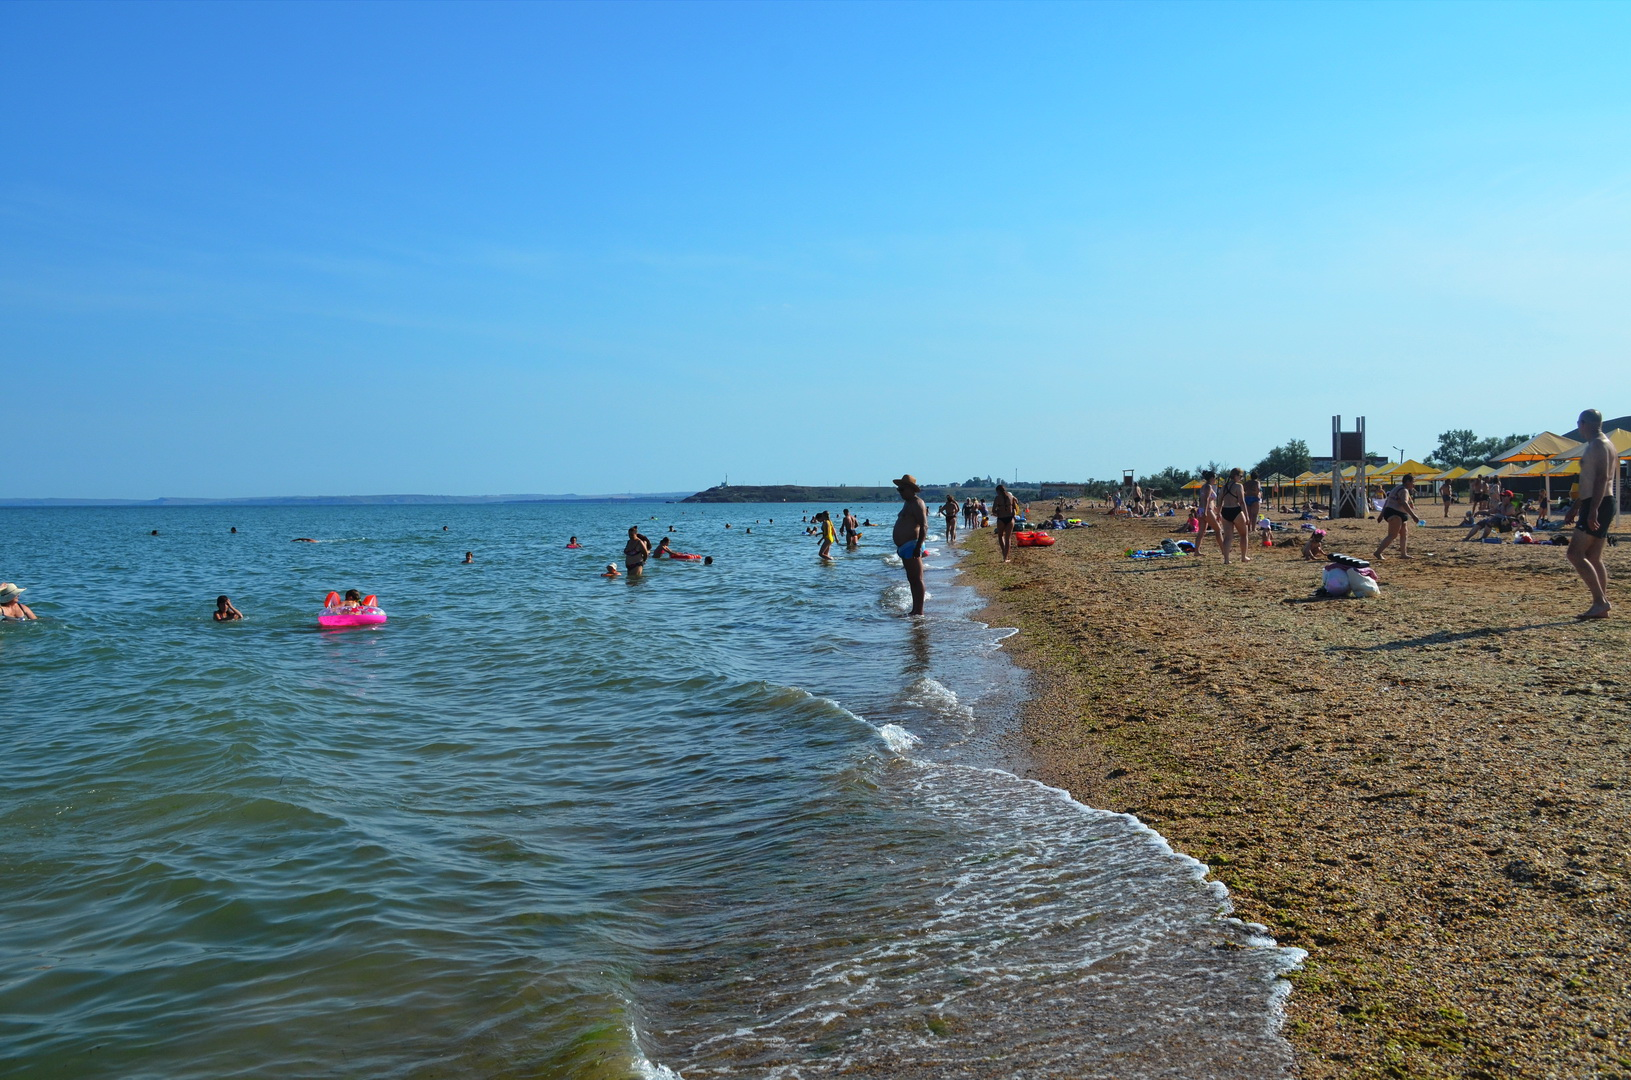 kerch city beach 13